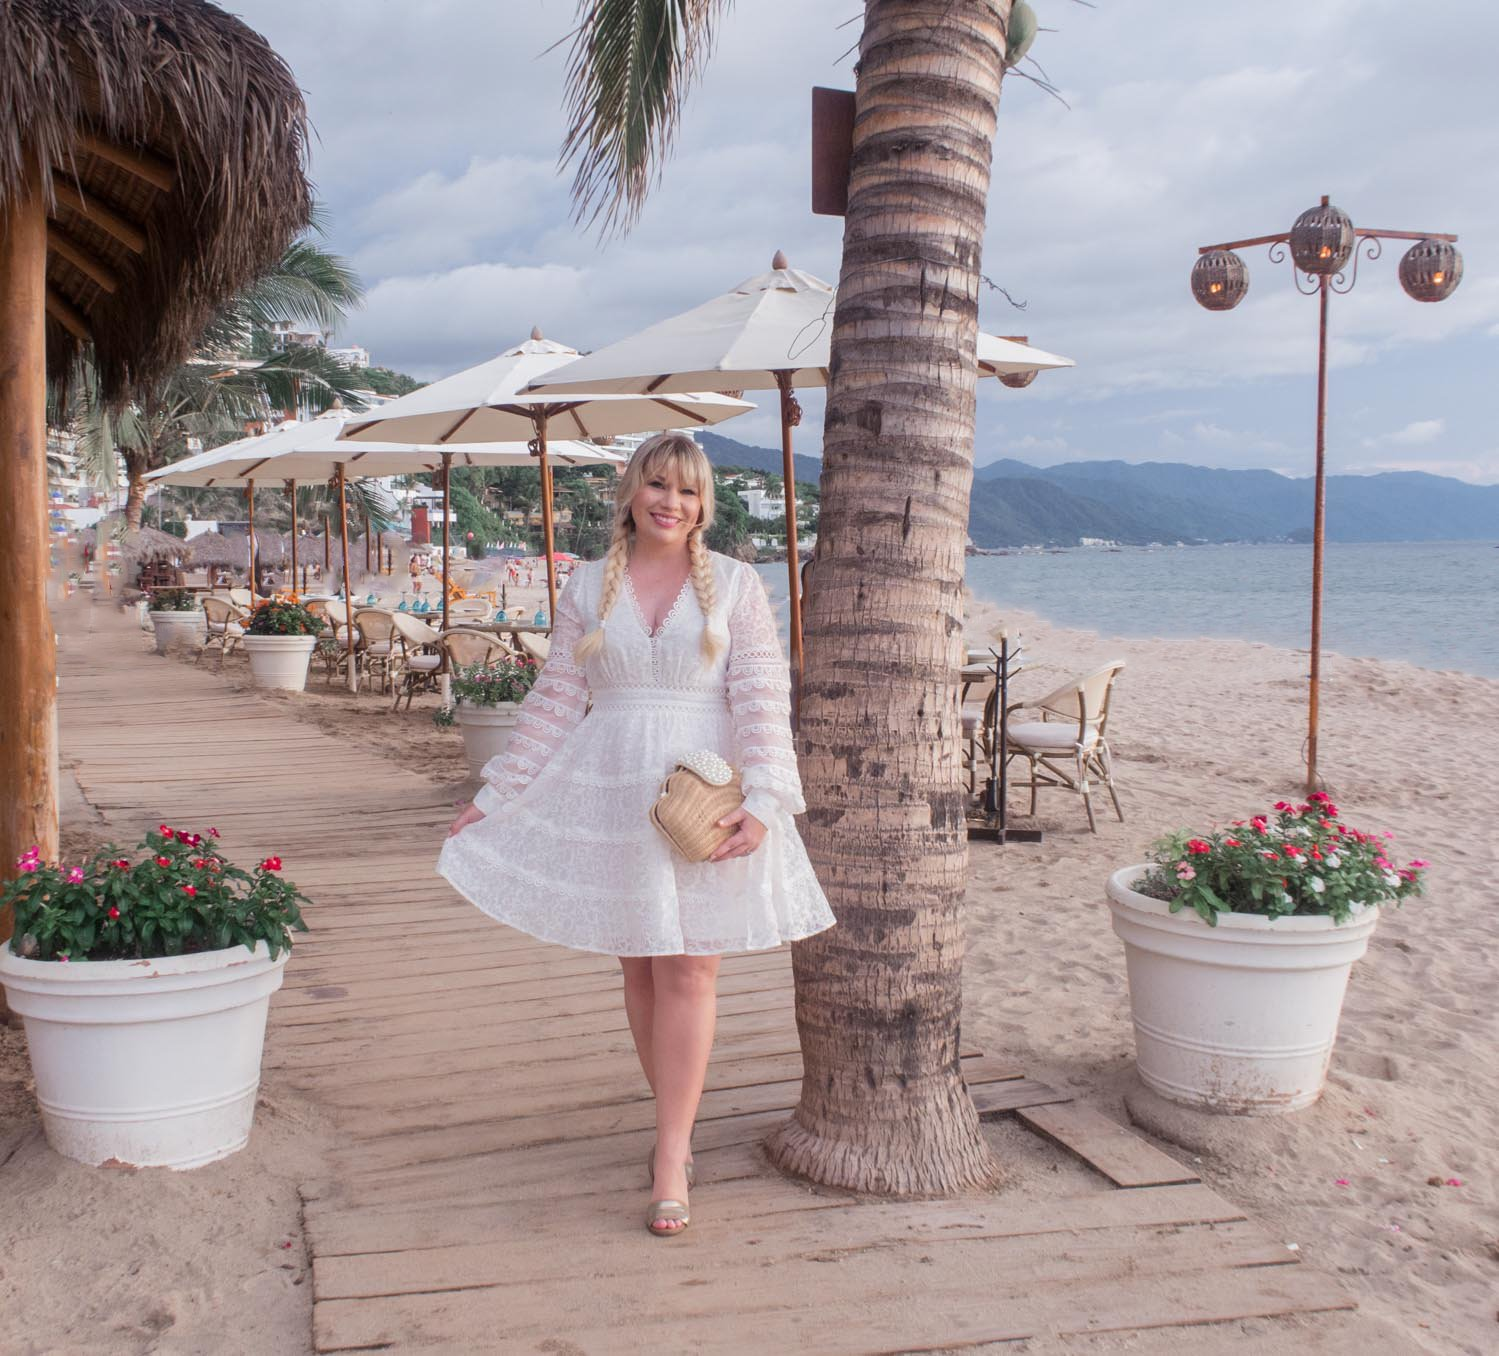 Elizabeth Hugen of Lizzie in Lace shares her favorite summer outfits from Puerto Vallarta!